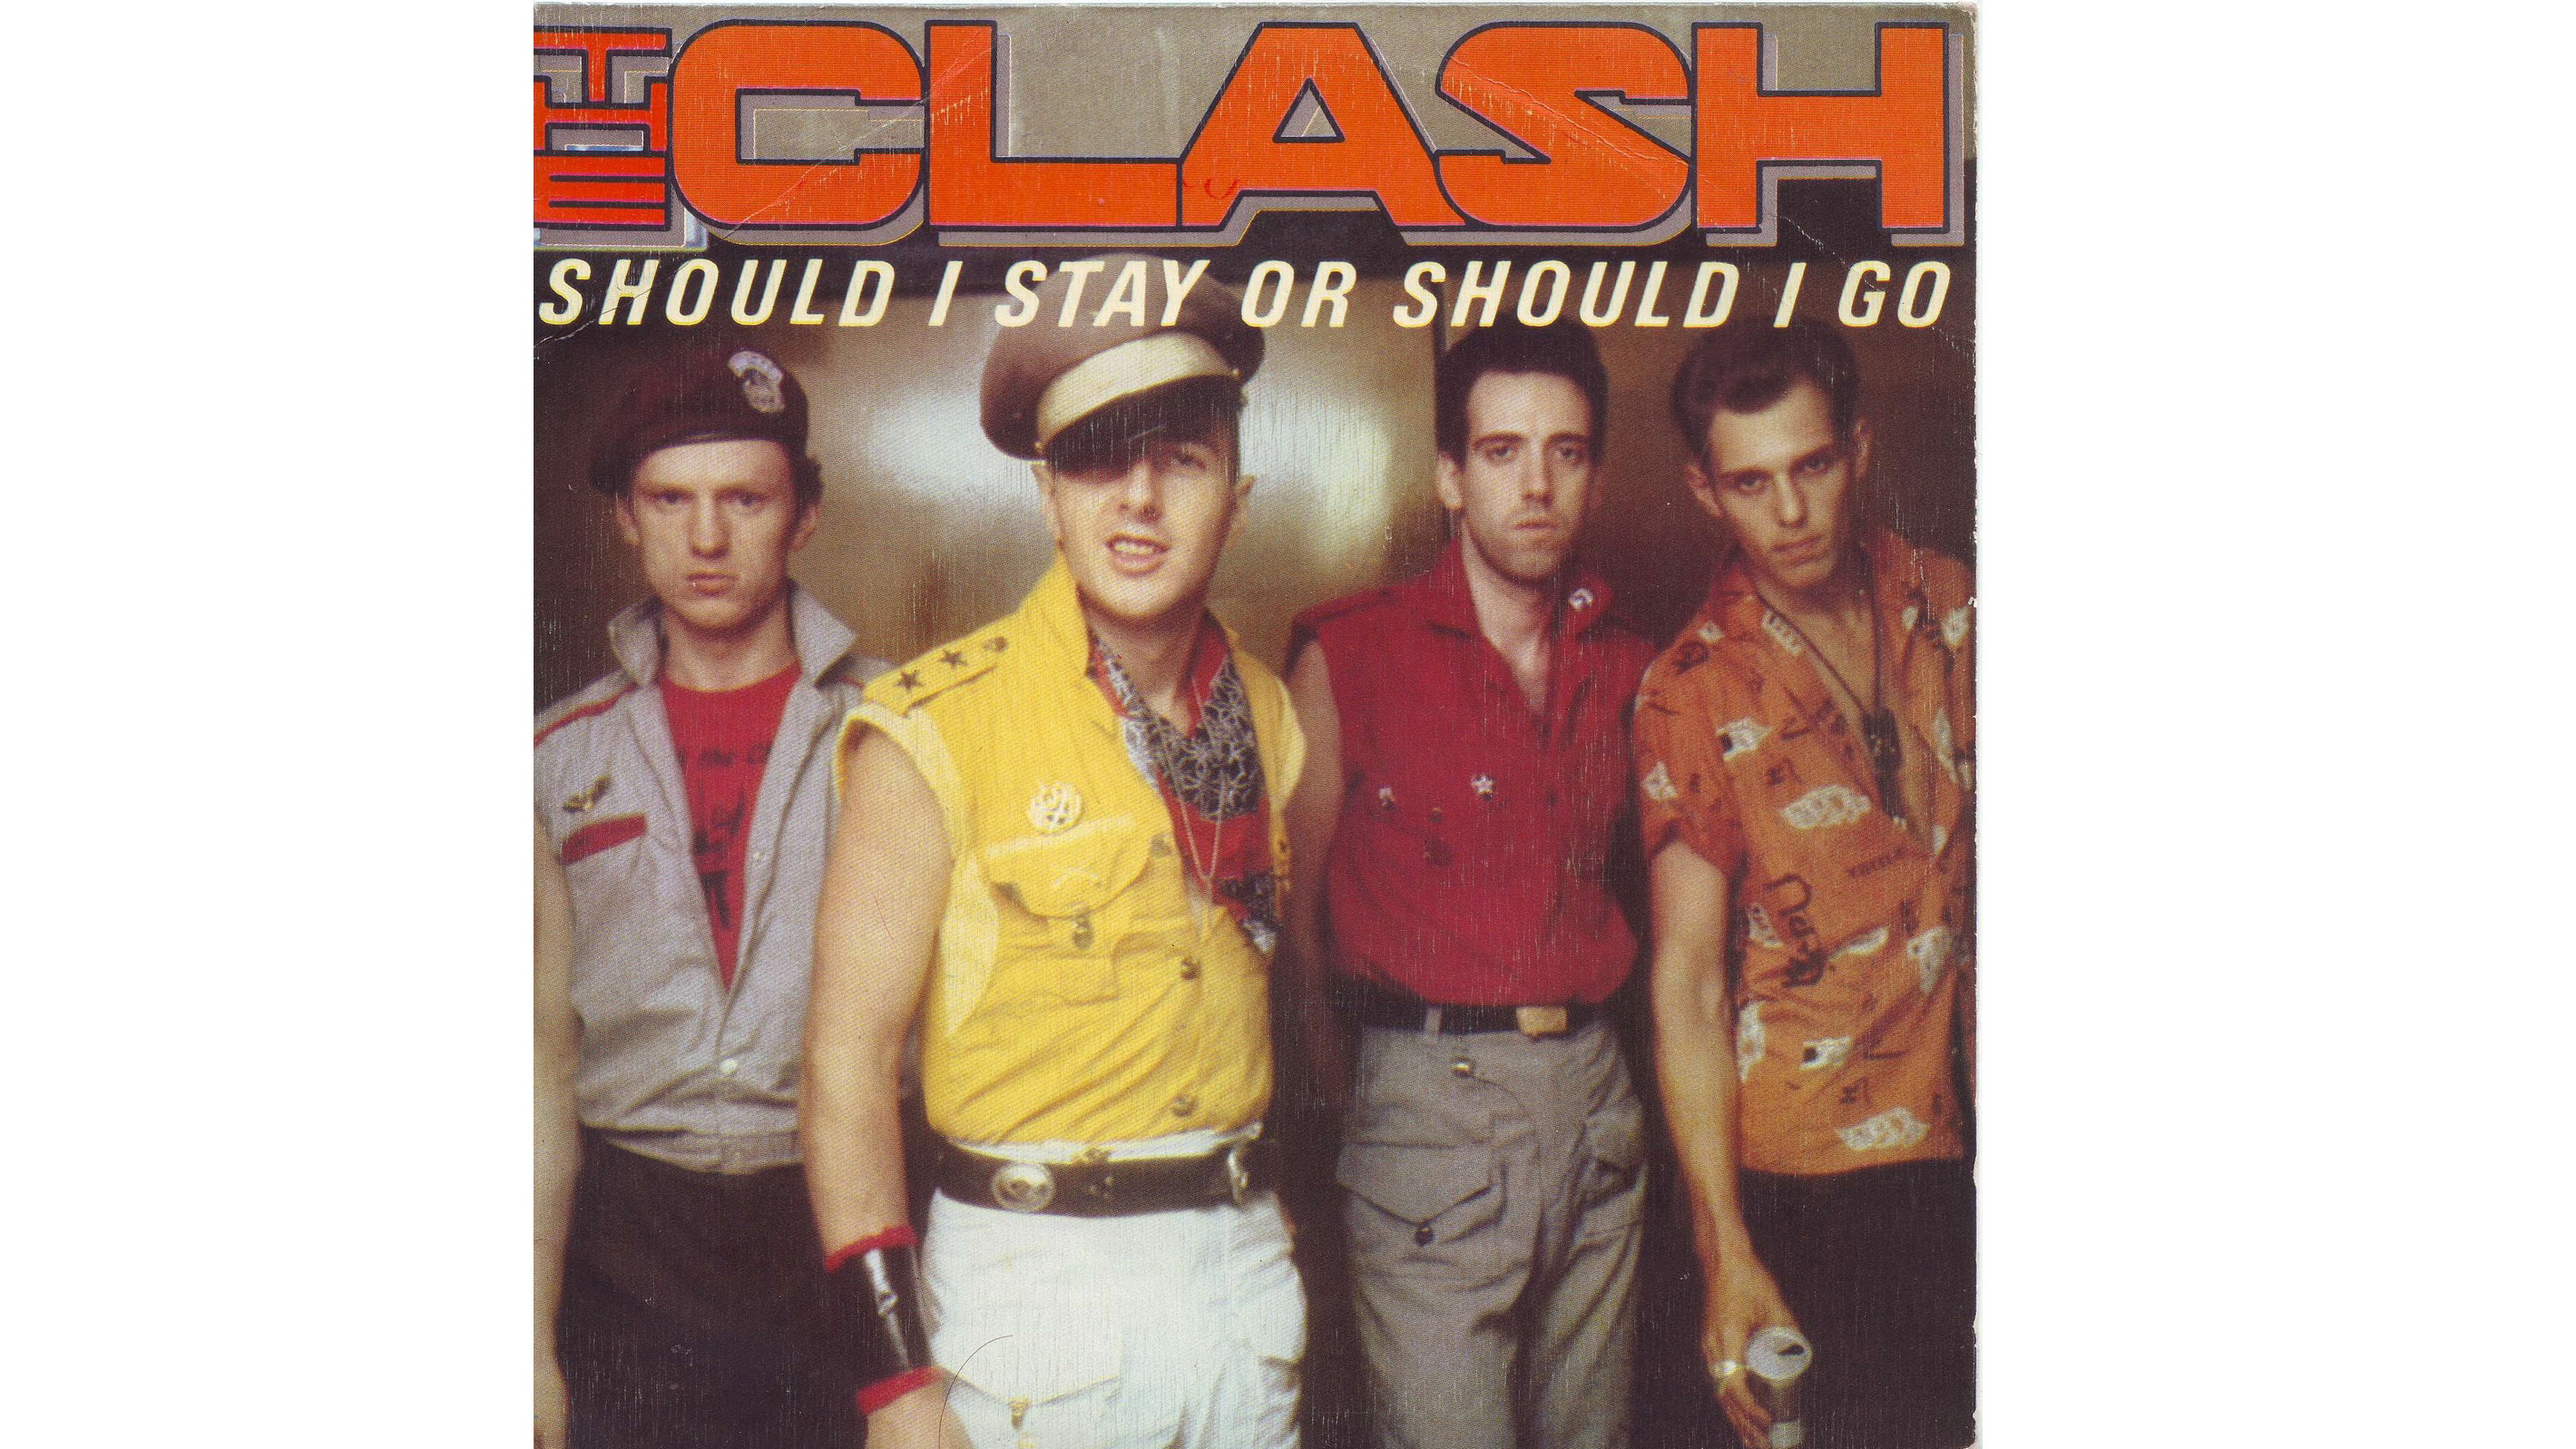 """Should I Stay or Should I Go"" by the Clash"